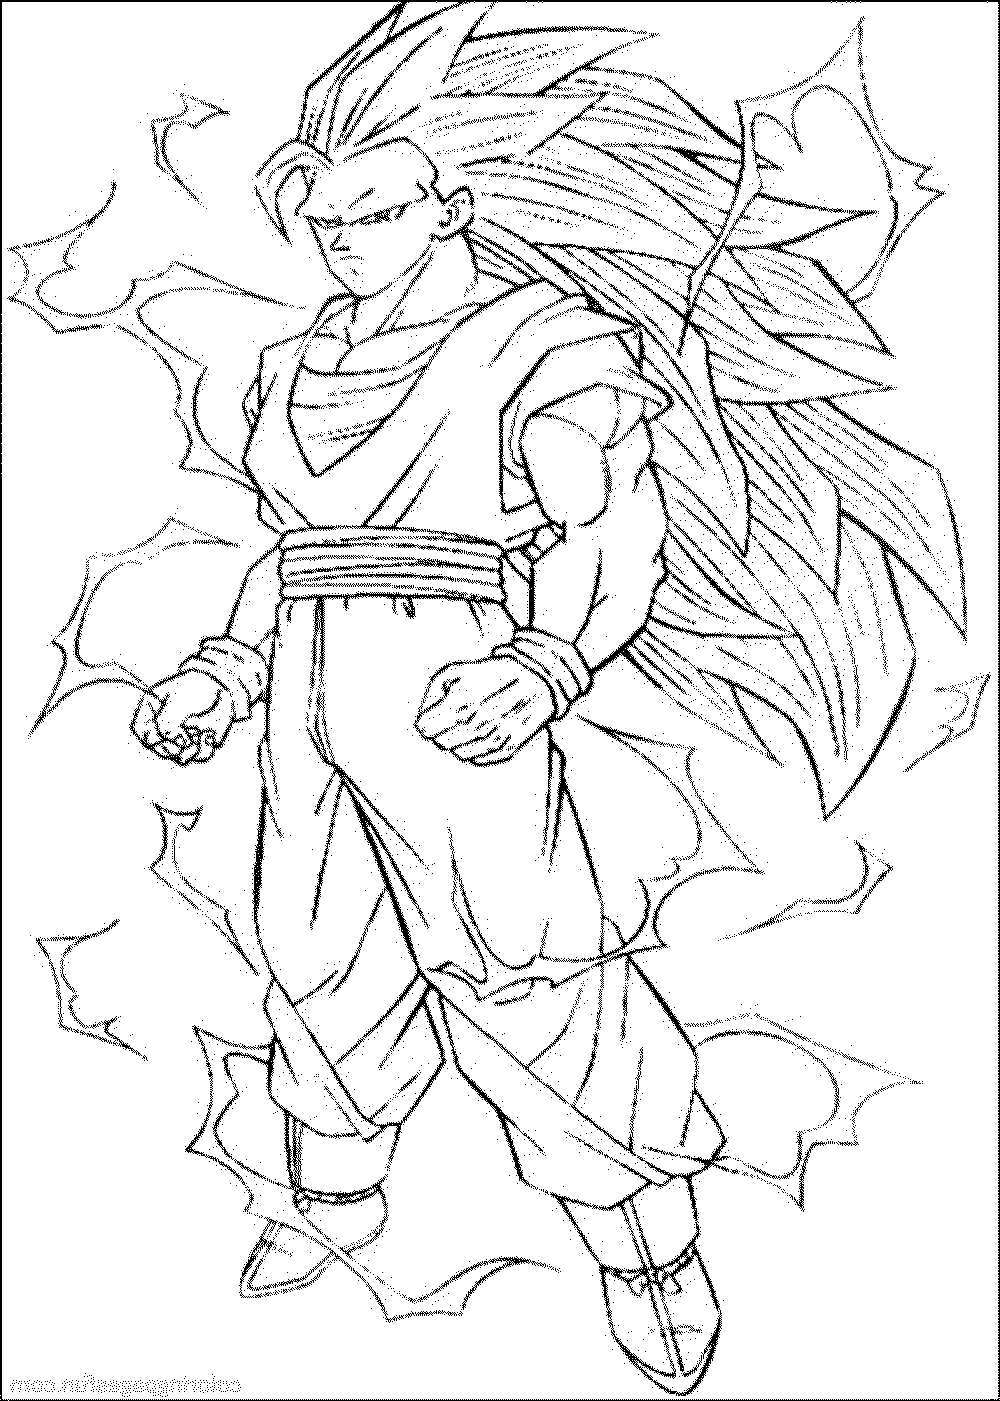 dragon ball z kai coloring pages dragon ball coloring pages best coloring pages for kids pages kai dragon coloring ball z